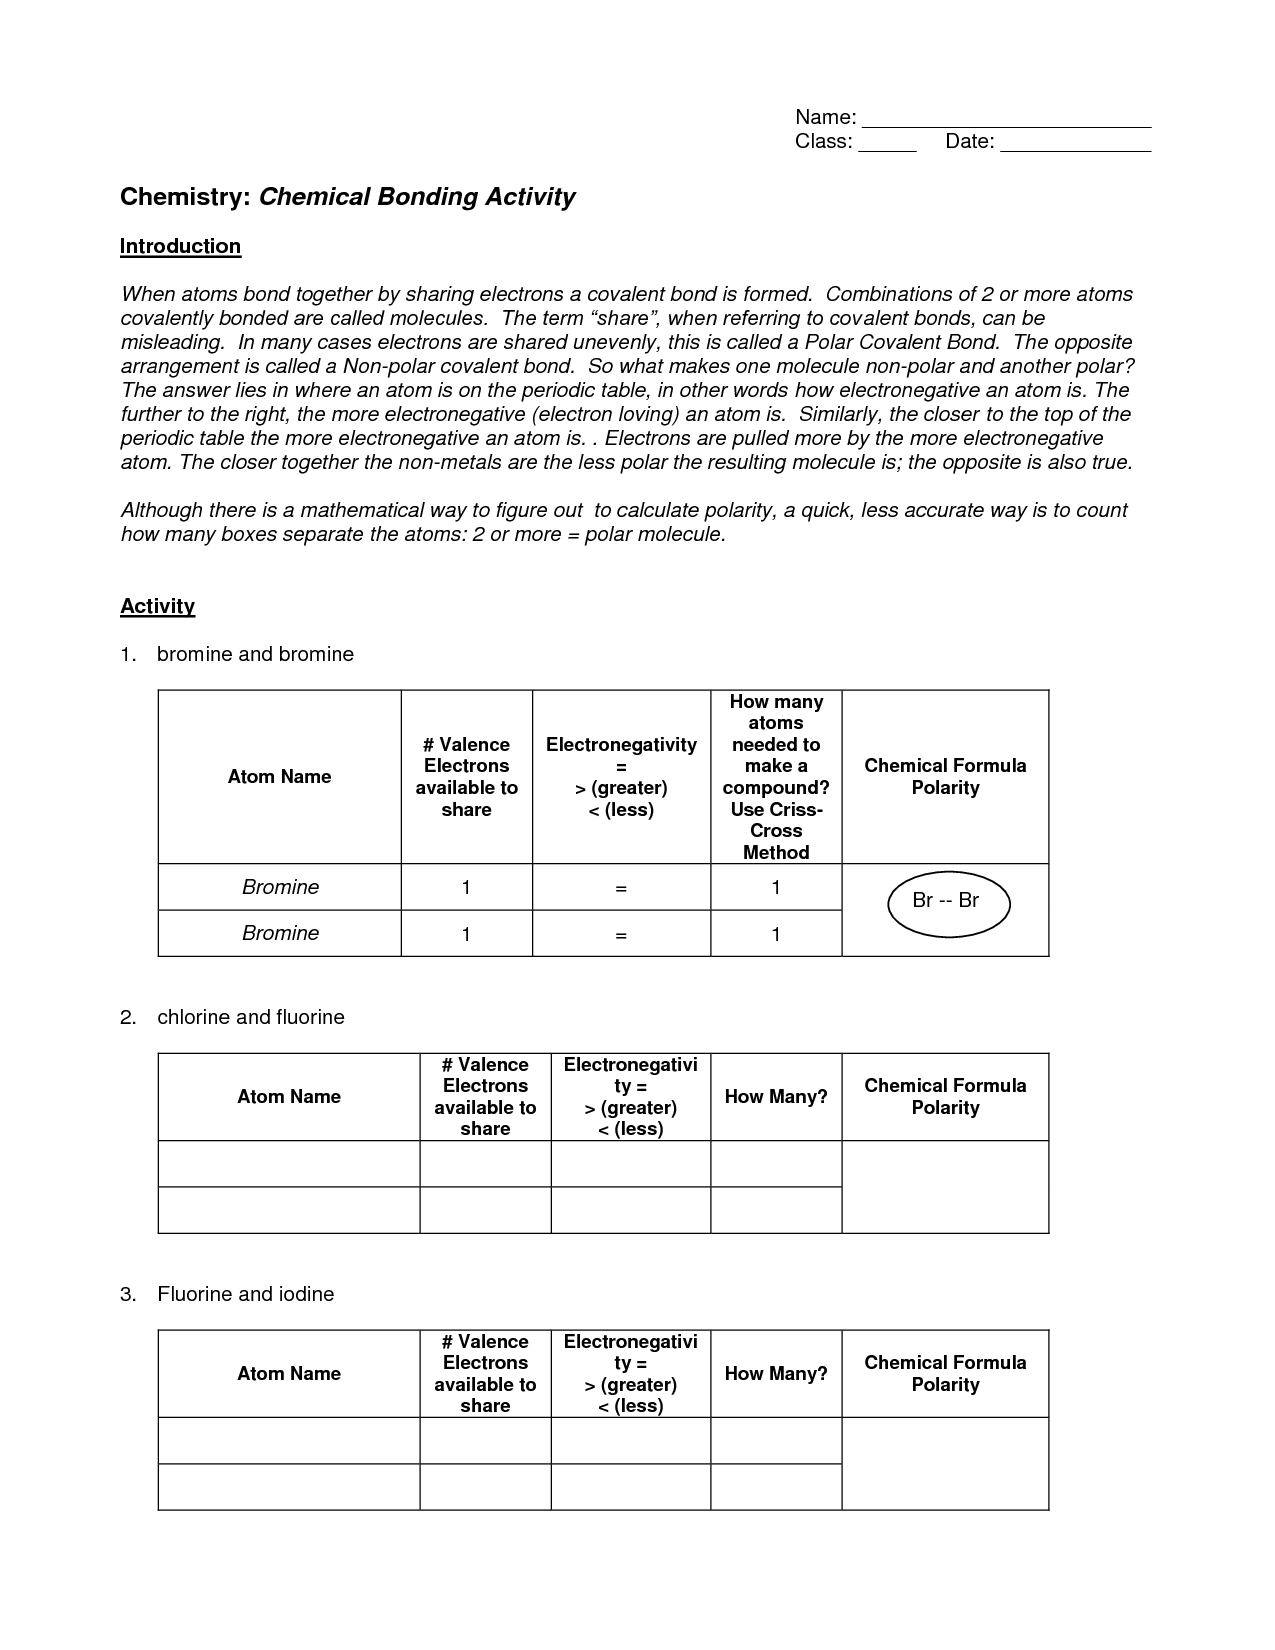 11 Best Images of Bonding Basics Ionic Bonds Worksheet Answers  Ionic and Covalent Bonding